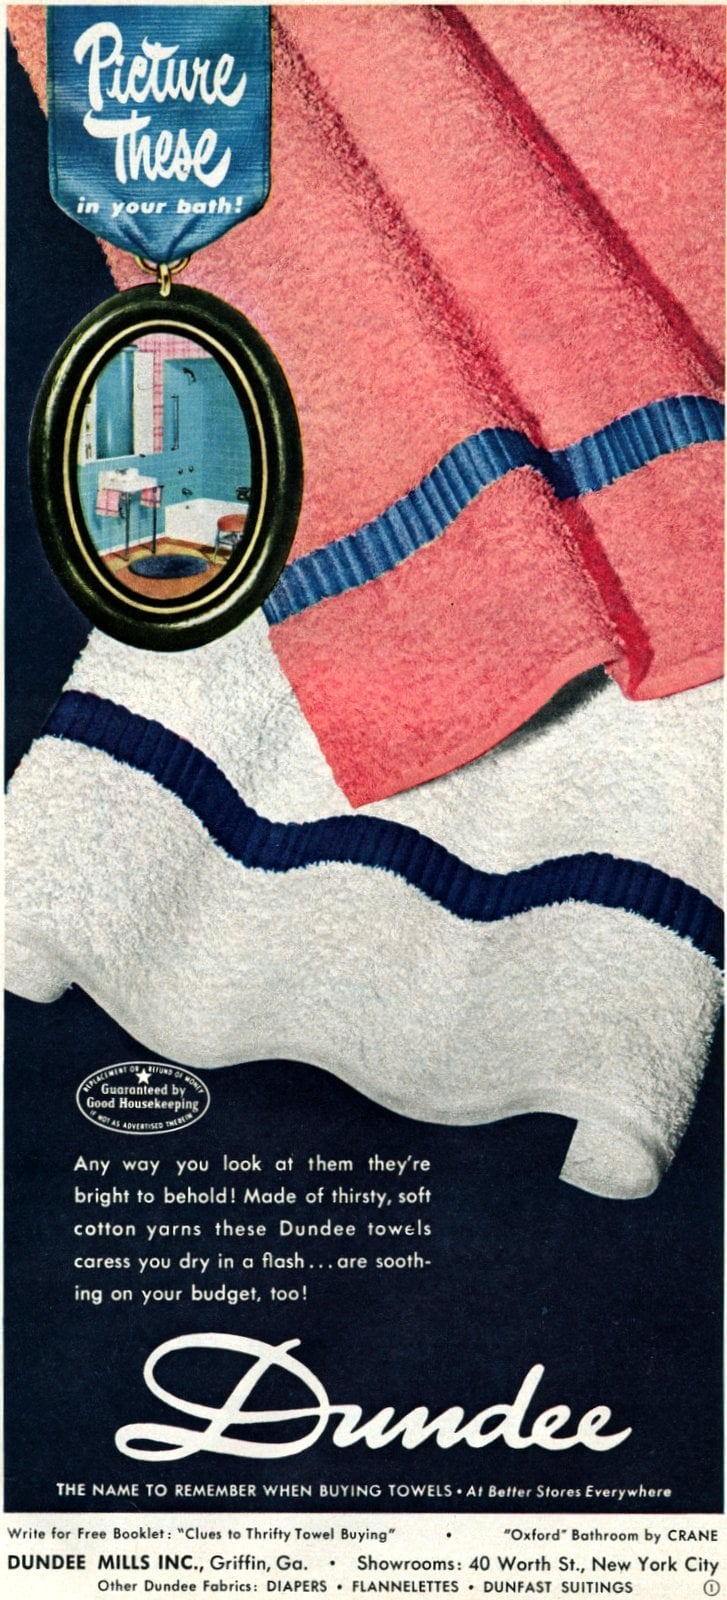 Dundee towels with ribbon design from 1950